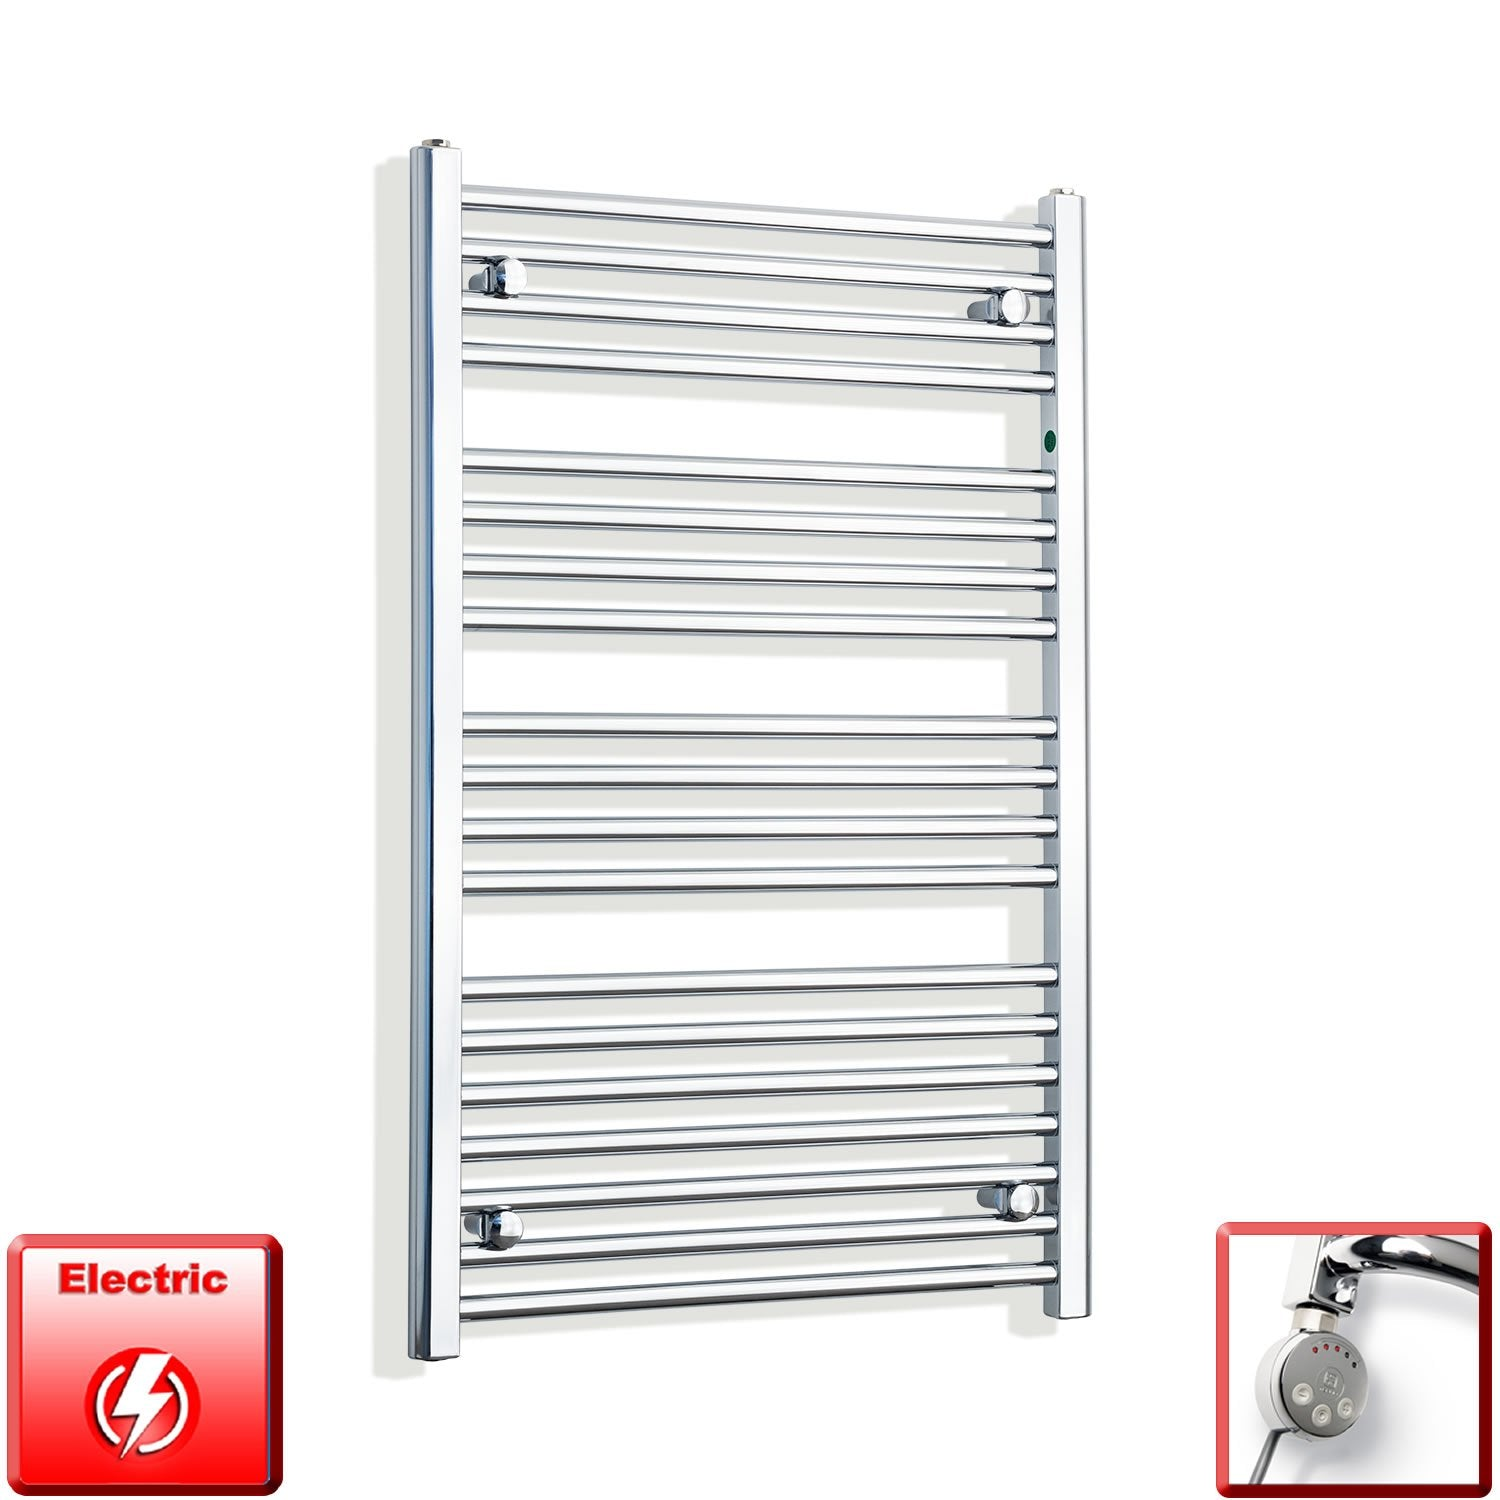 650mm Wide 1000mm High Flat Chrome Pre-Filled Electric Heated Towel Rail Radiator HTR,MEG Thermostatic Element